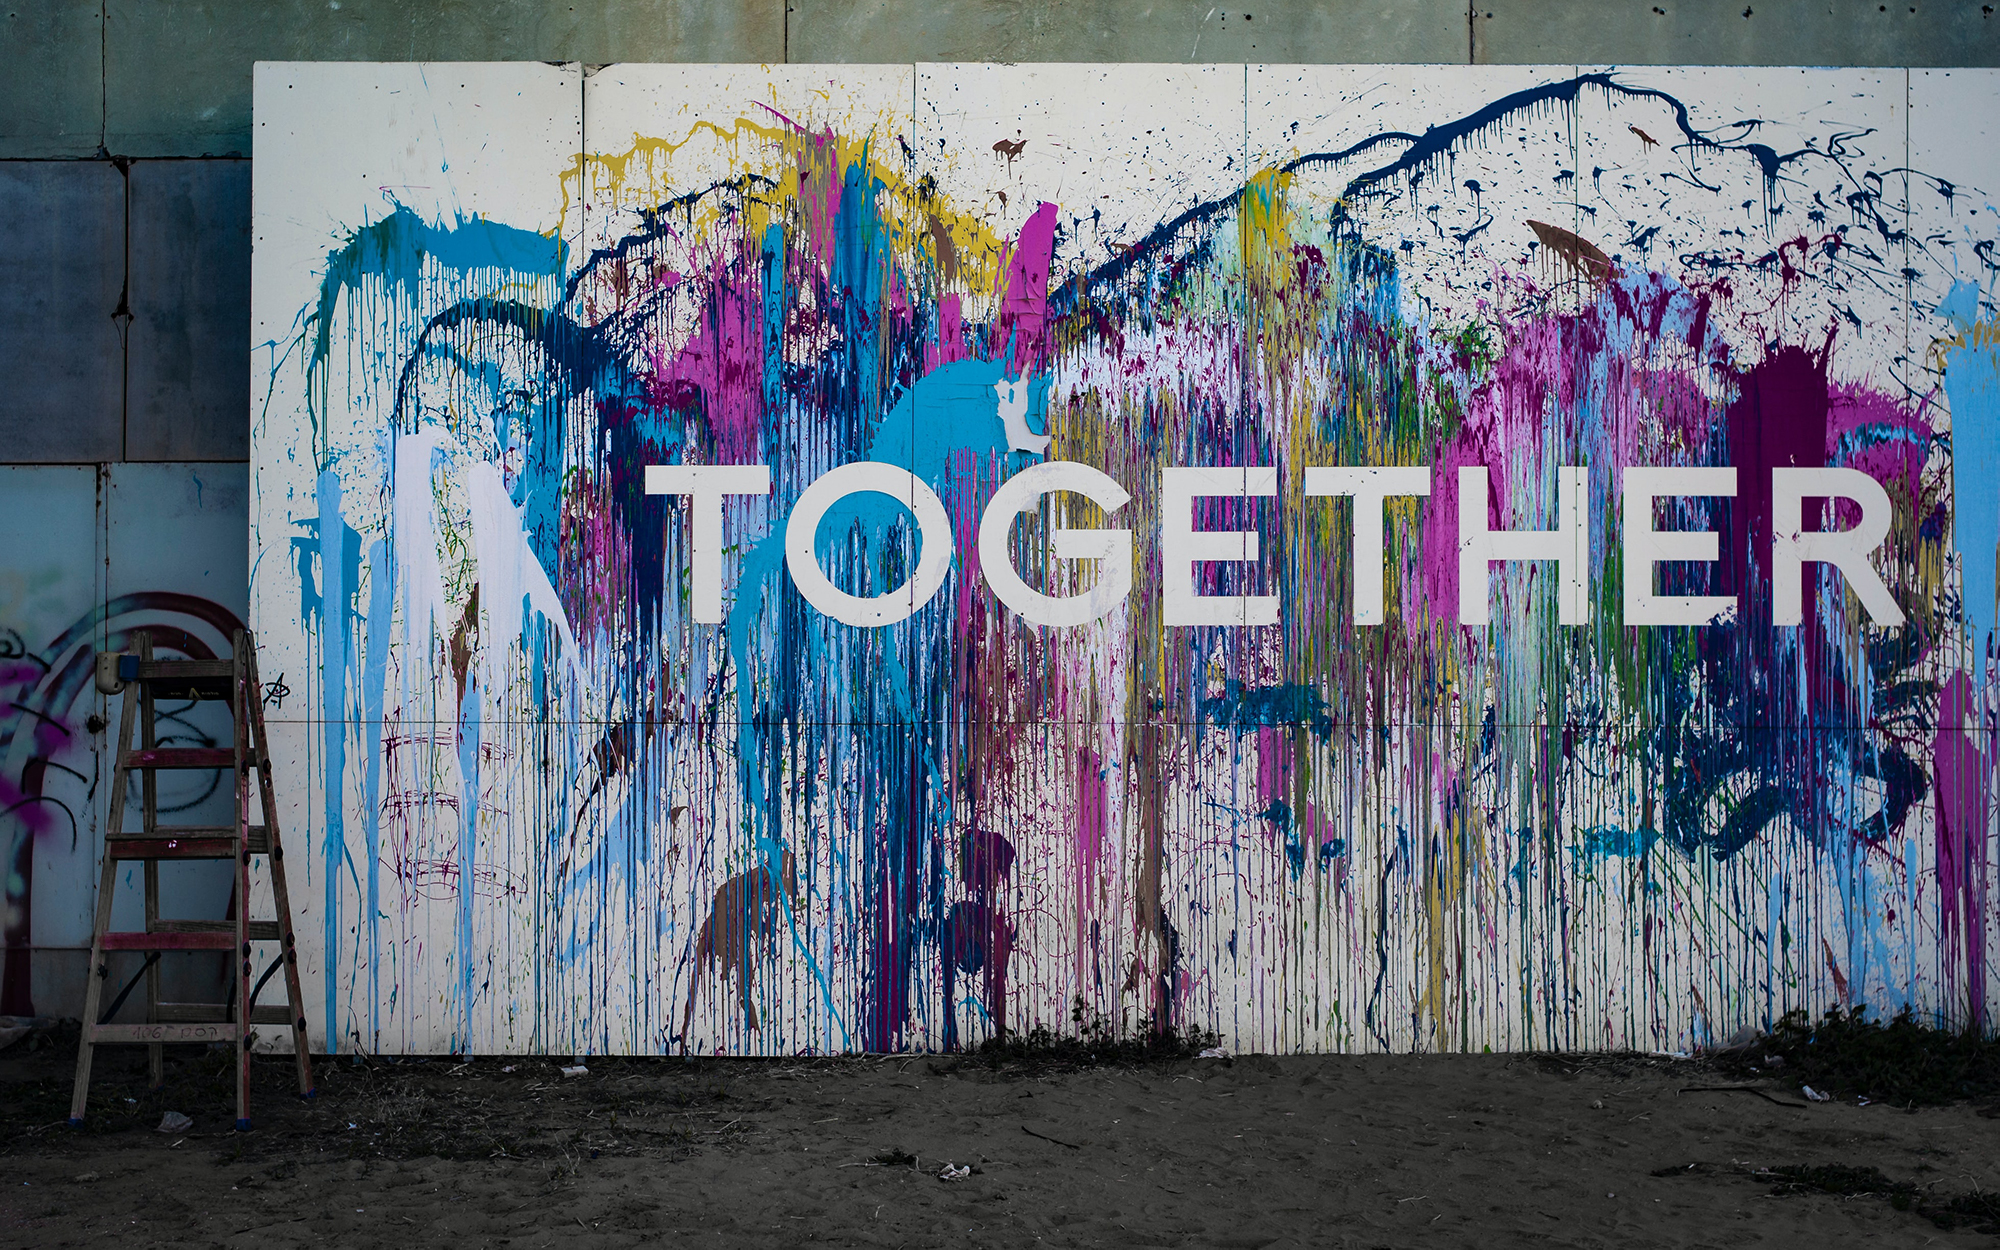 Together, written on a mural.